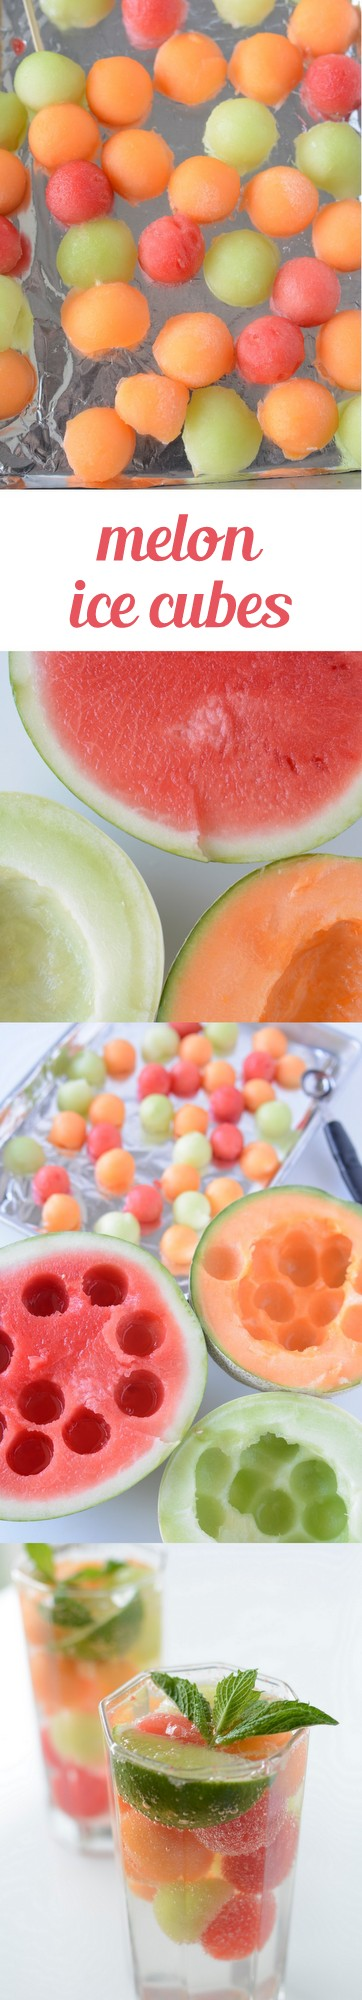 Melon Ice cubes are a great way to add some delicious color and flavor to your drinks for the summer. #watermelon #honeydew #cantelope #icecubes #summerrecipes